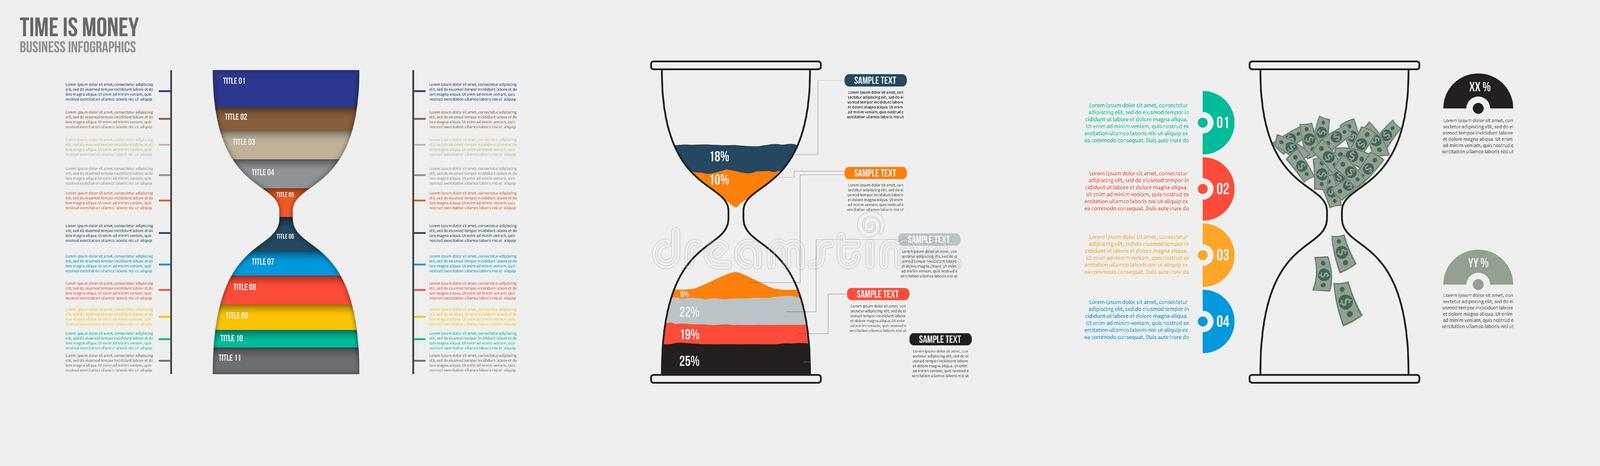 Time is money. Vector hourglass infographic template. Design business concept for presentation, graph and diagram. Options, parts, steps or processes. Vector royalty free illustration